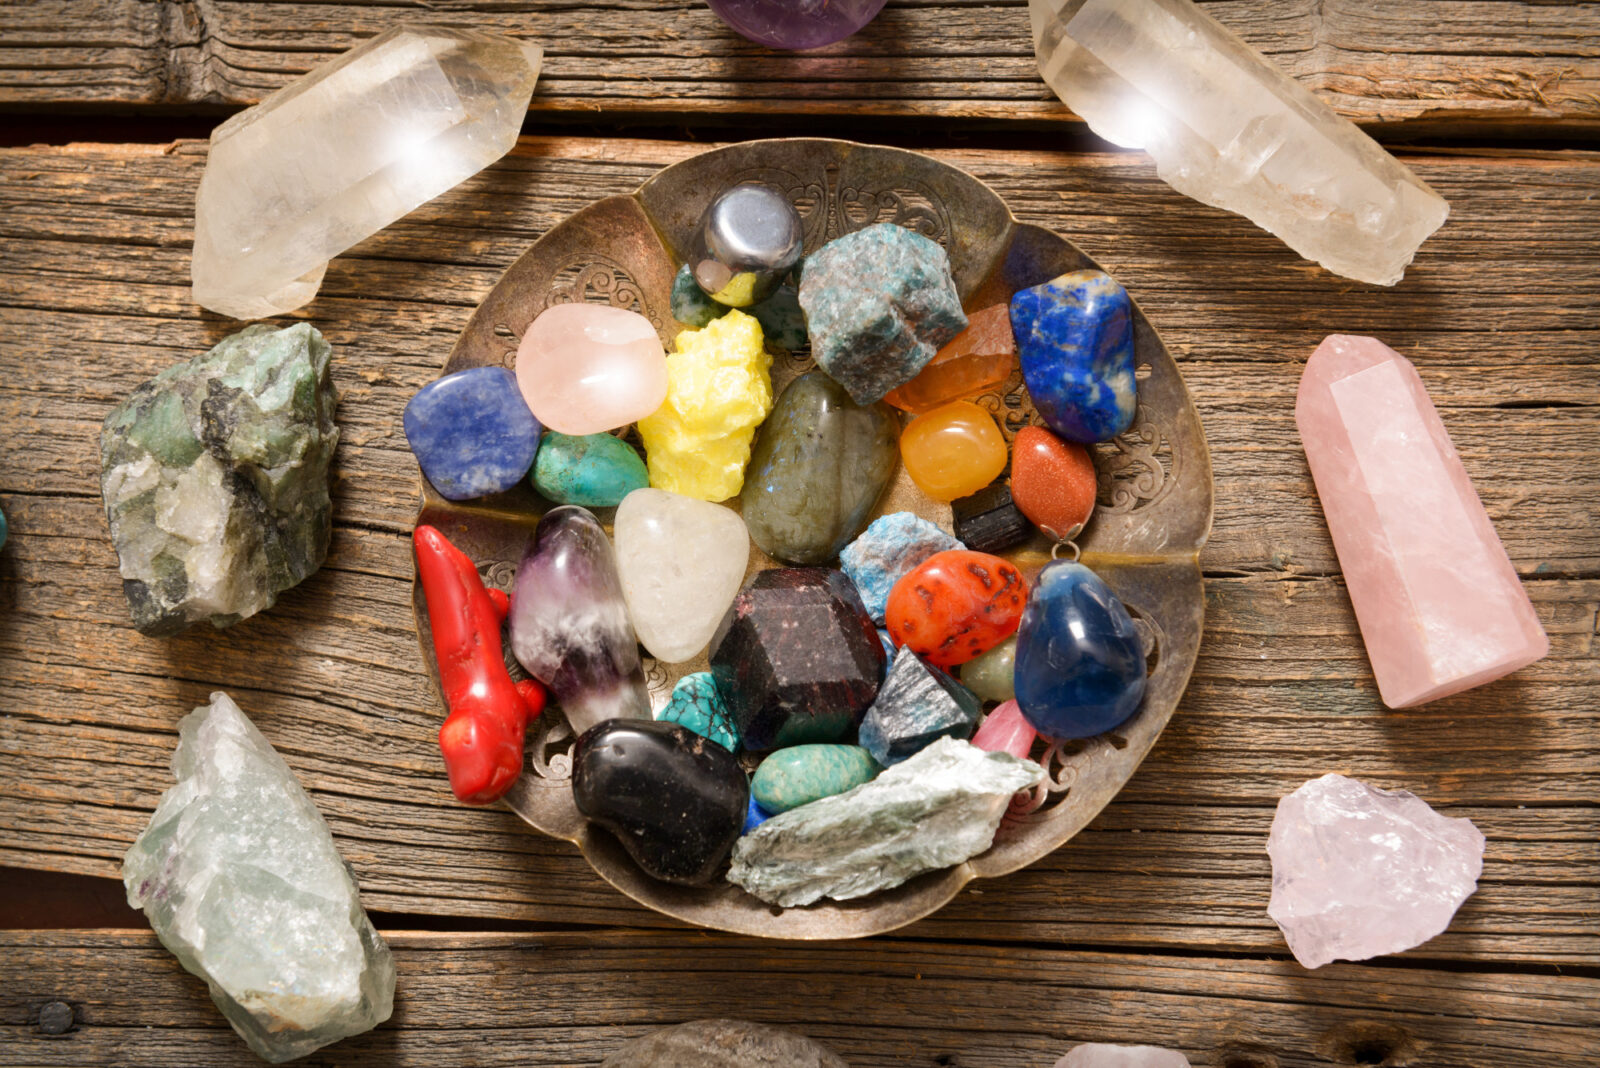 Are you interested in learning more about gemstones? This beginner's guide will talk you through everything you need to know.